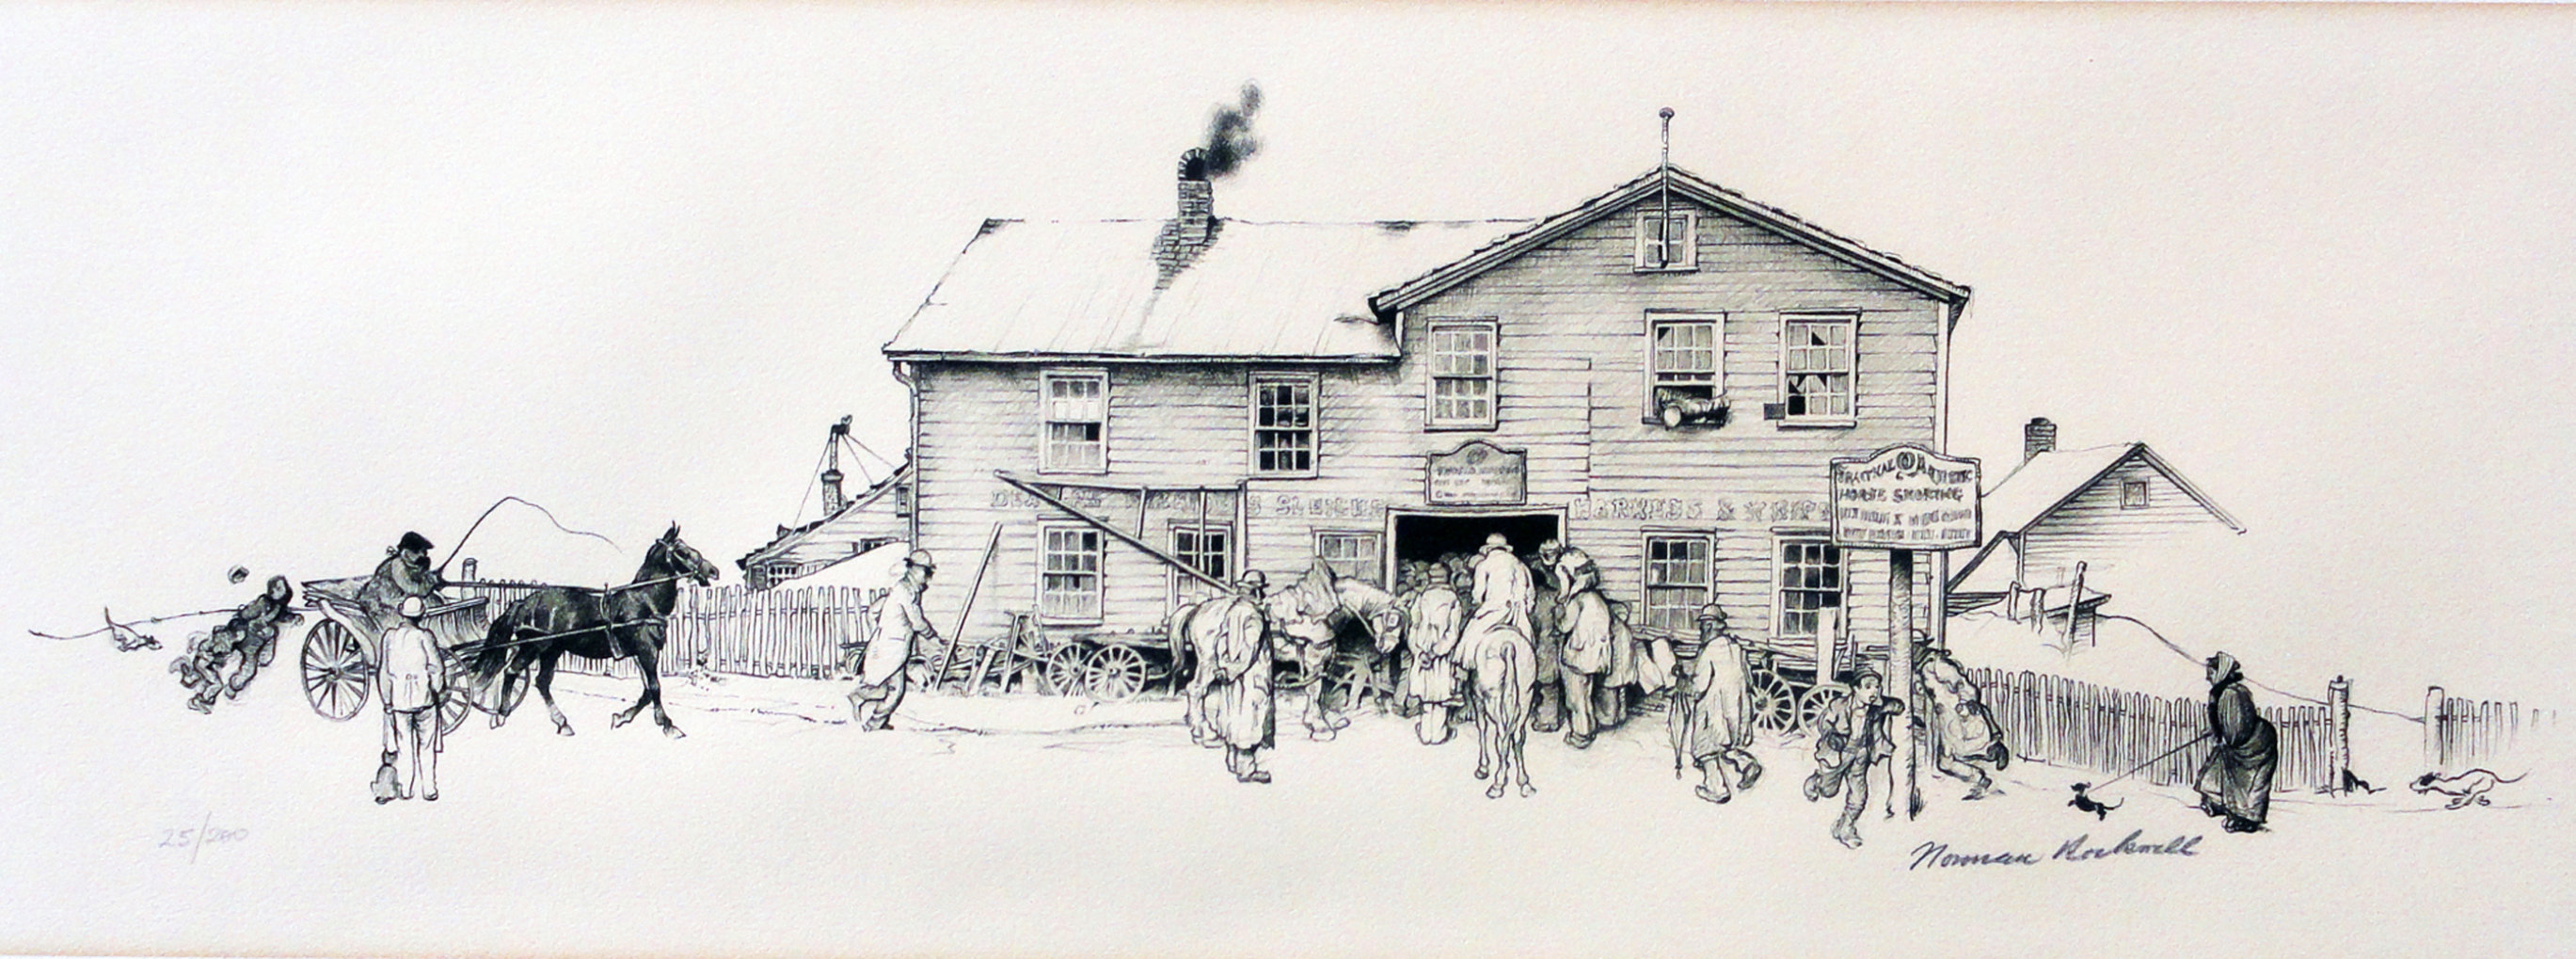 Blacksmith Shoppe (Blacksmith's Boy - Heel And Toe) 1971 Limited Edition Print by Norman Rockwell